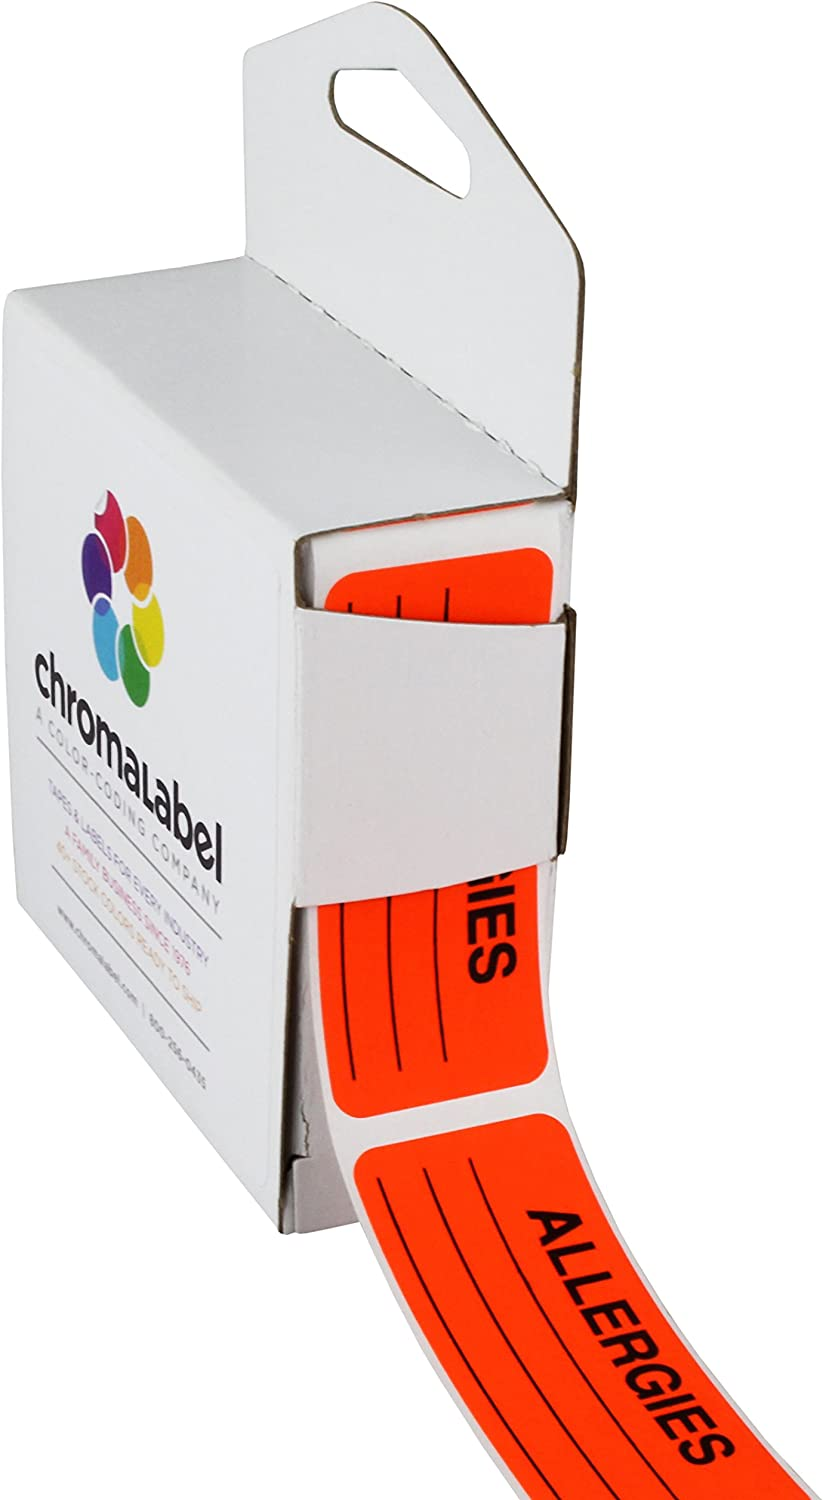 ChromaLabel 1 x 2-1/4 Inch Allergy Labels, 250/Dispenser Box, Fluorescent Red-Orange, Imprinted: